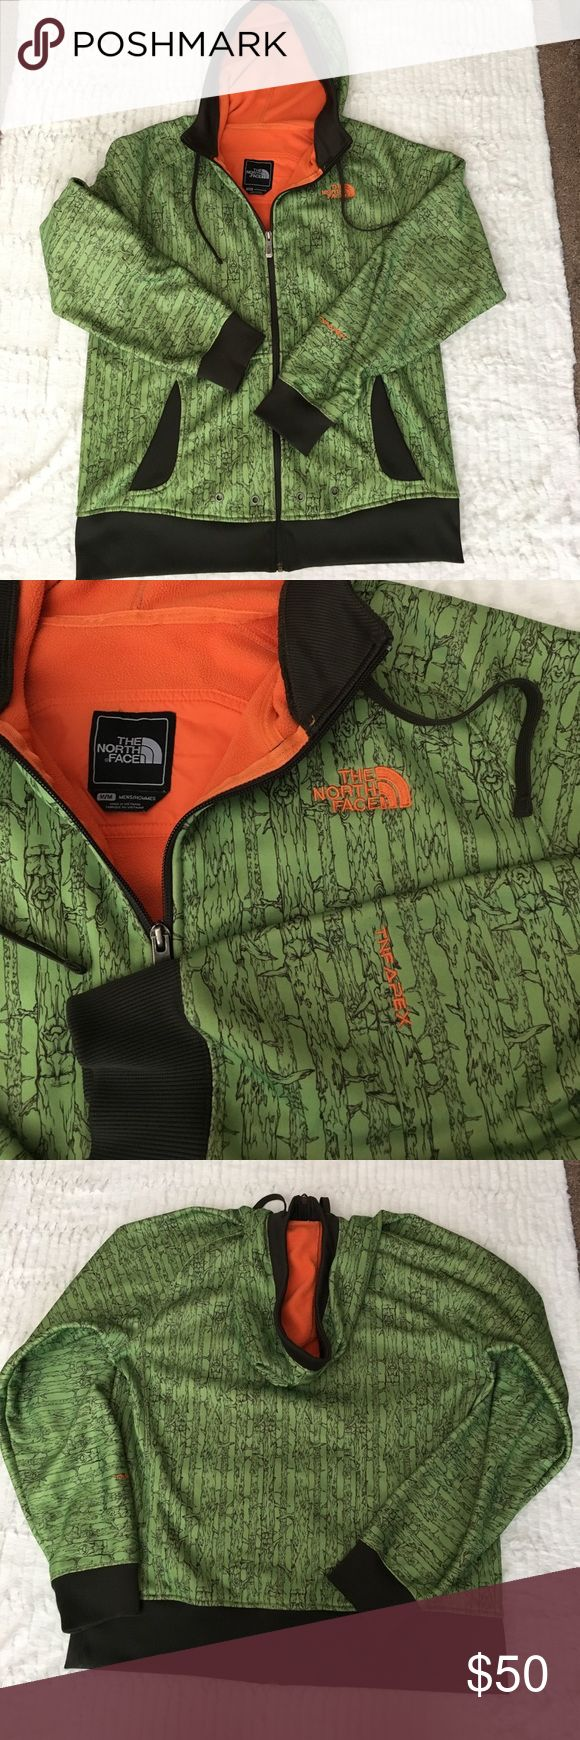 """The North Face TNF Apex men's hooded jacket Green and brown with tree branch design soft shell outer. Orange fleece lined. Grommet detail on lower front. Excellent condition. Approximate measurements: 23"""" chest, 26"""" long. Men's M. The North Face Jackets & Coats"""